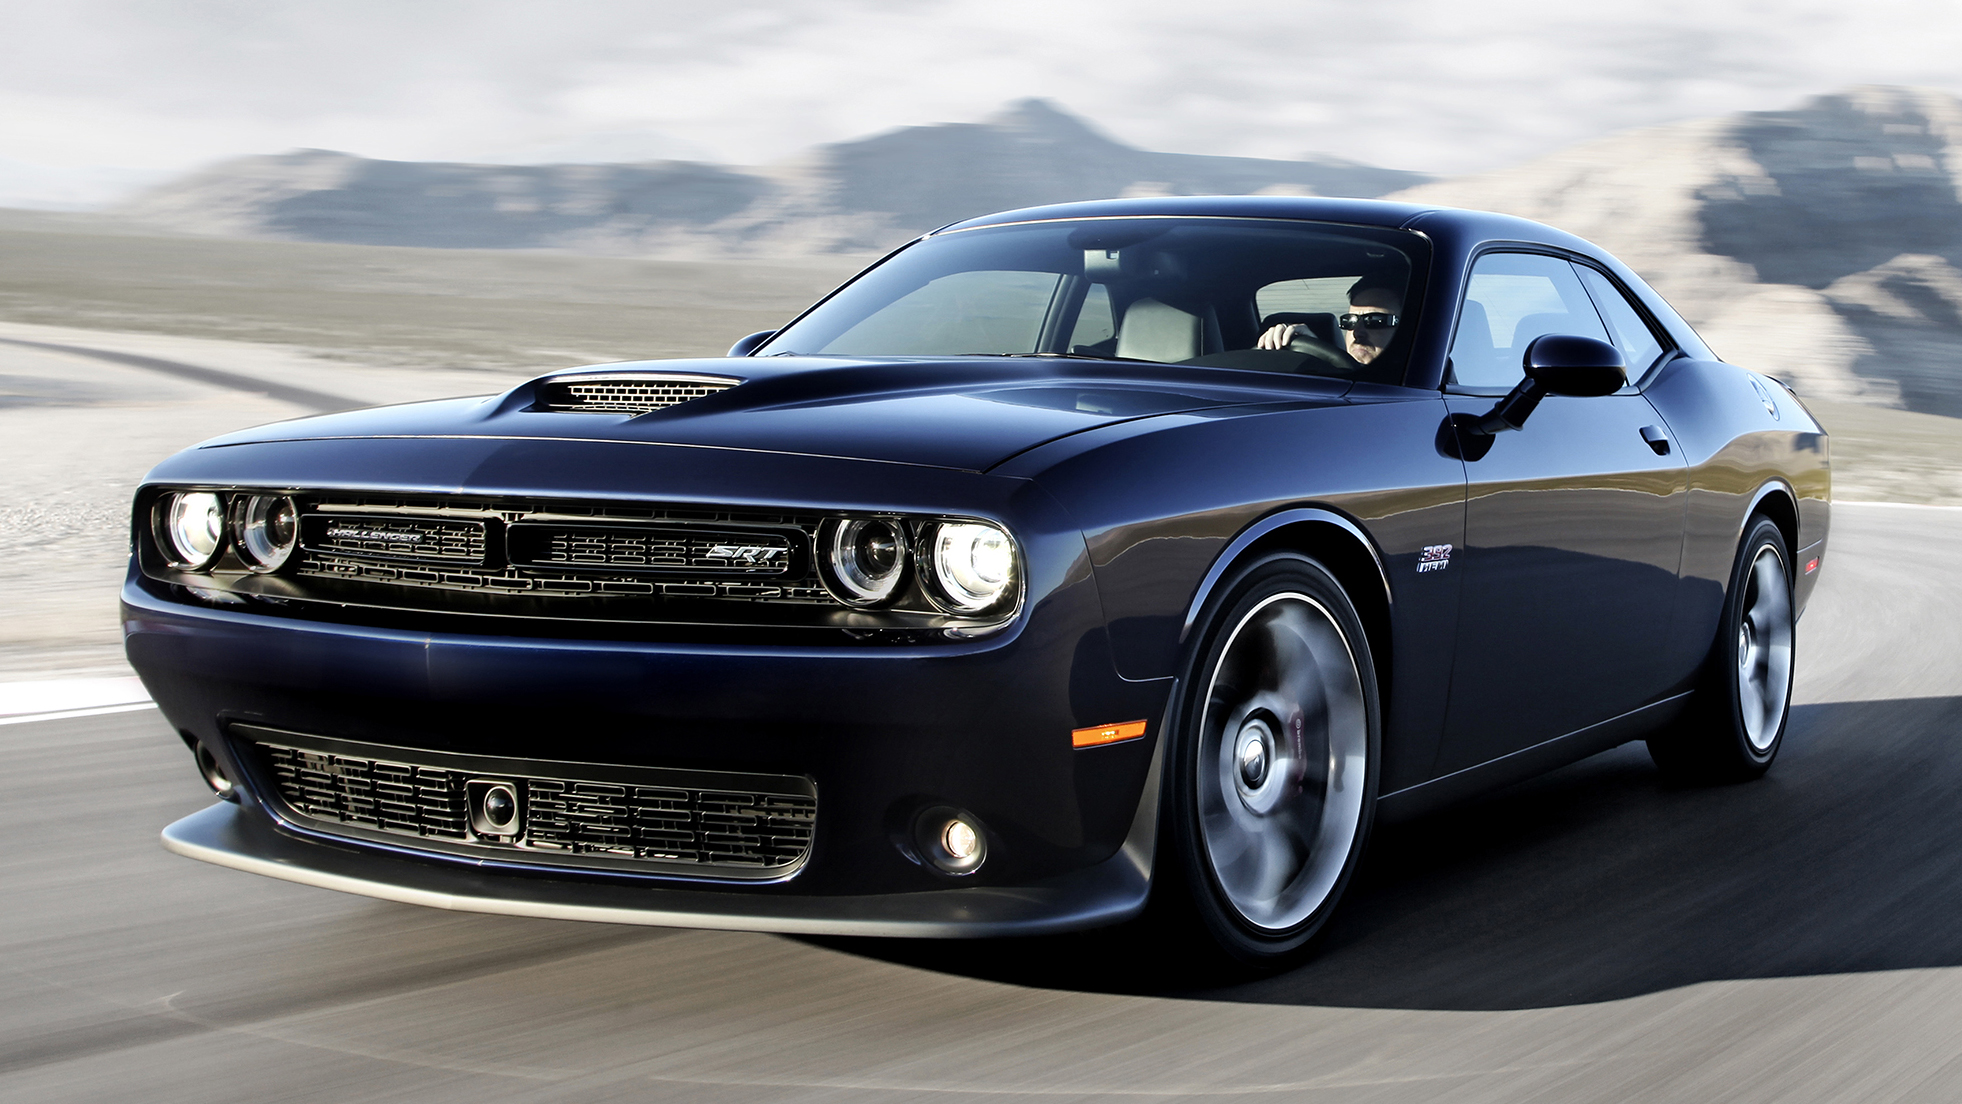 Dodge Challenger Srt New 6 2 V8 Mill With 707 Hp Paul